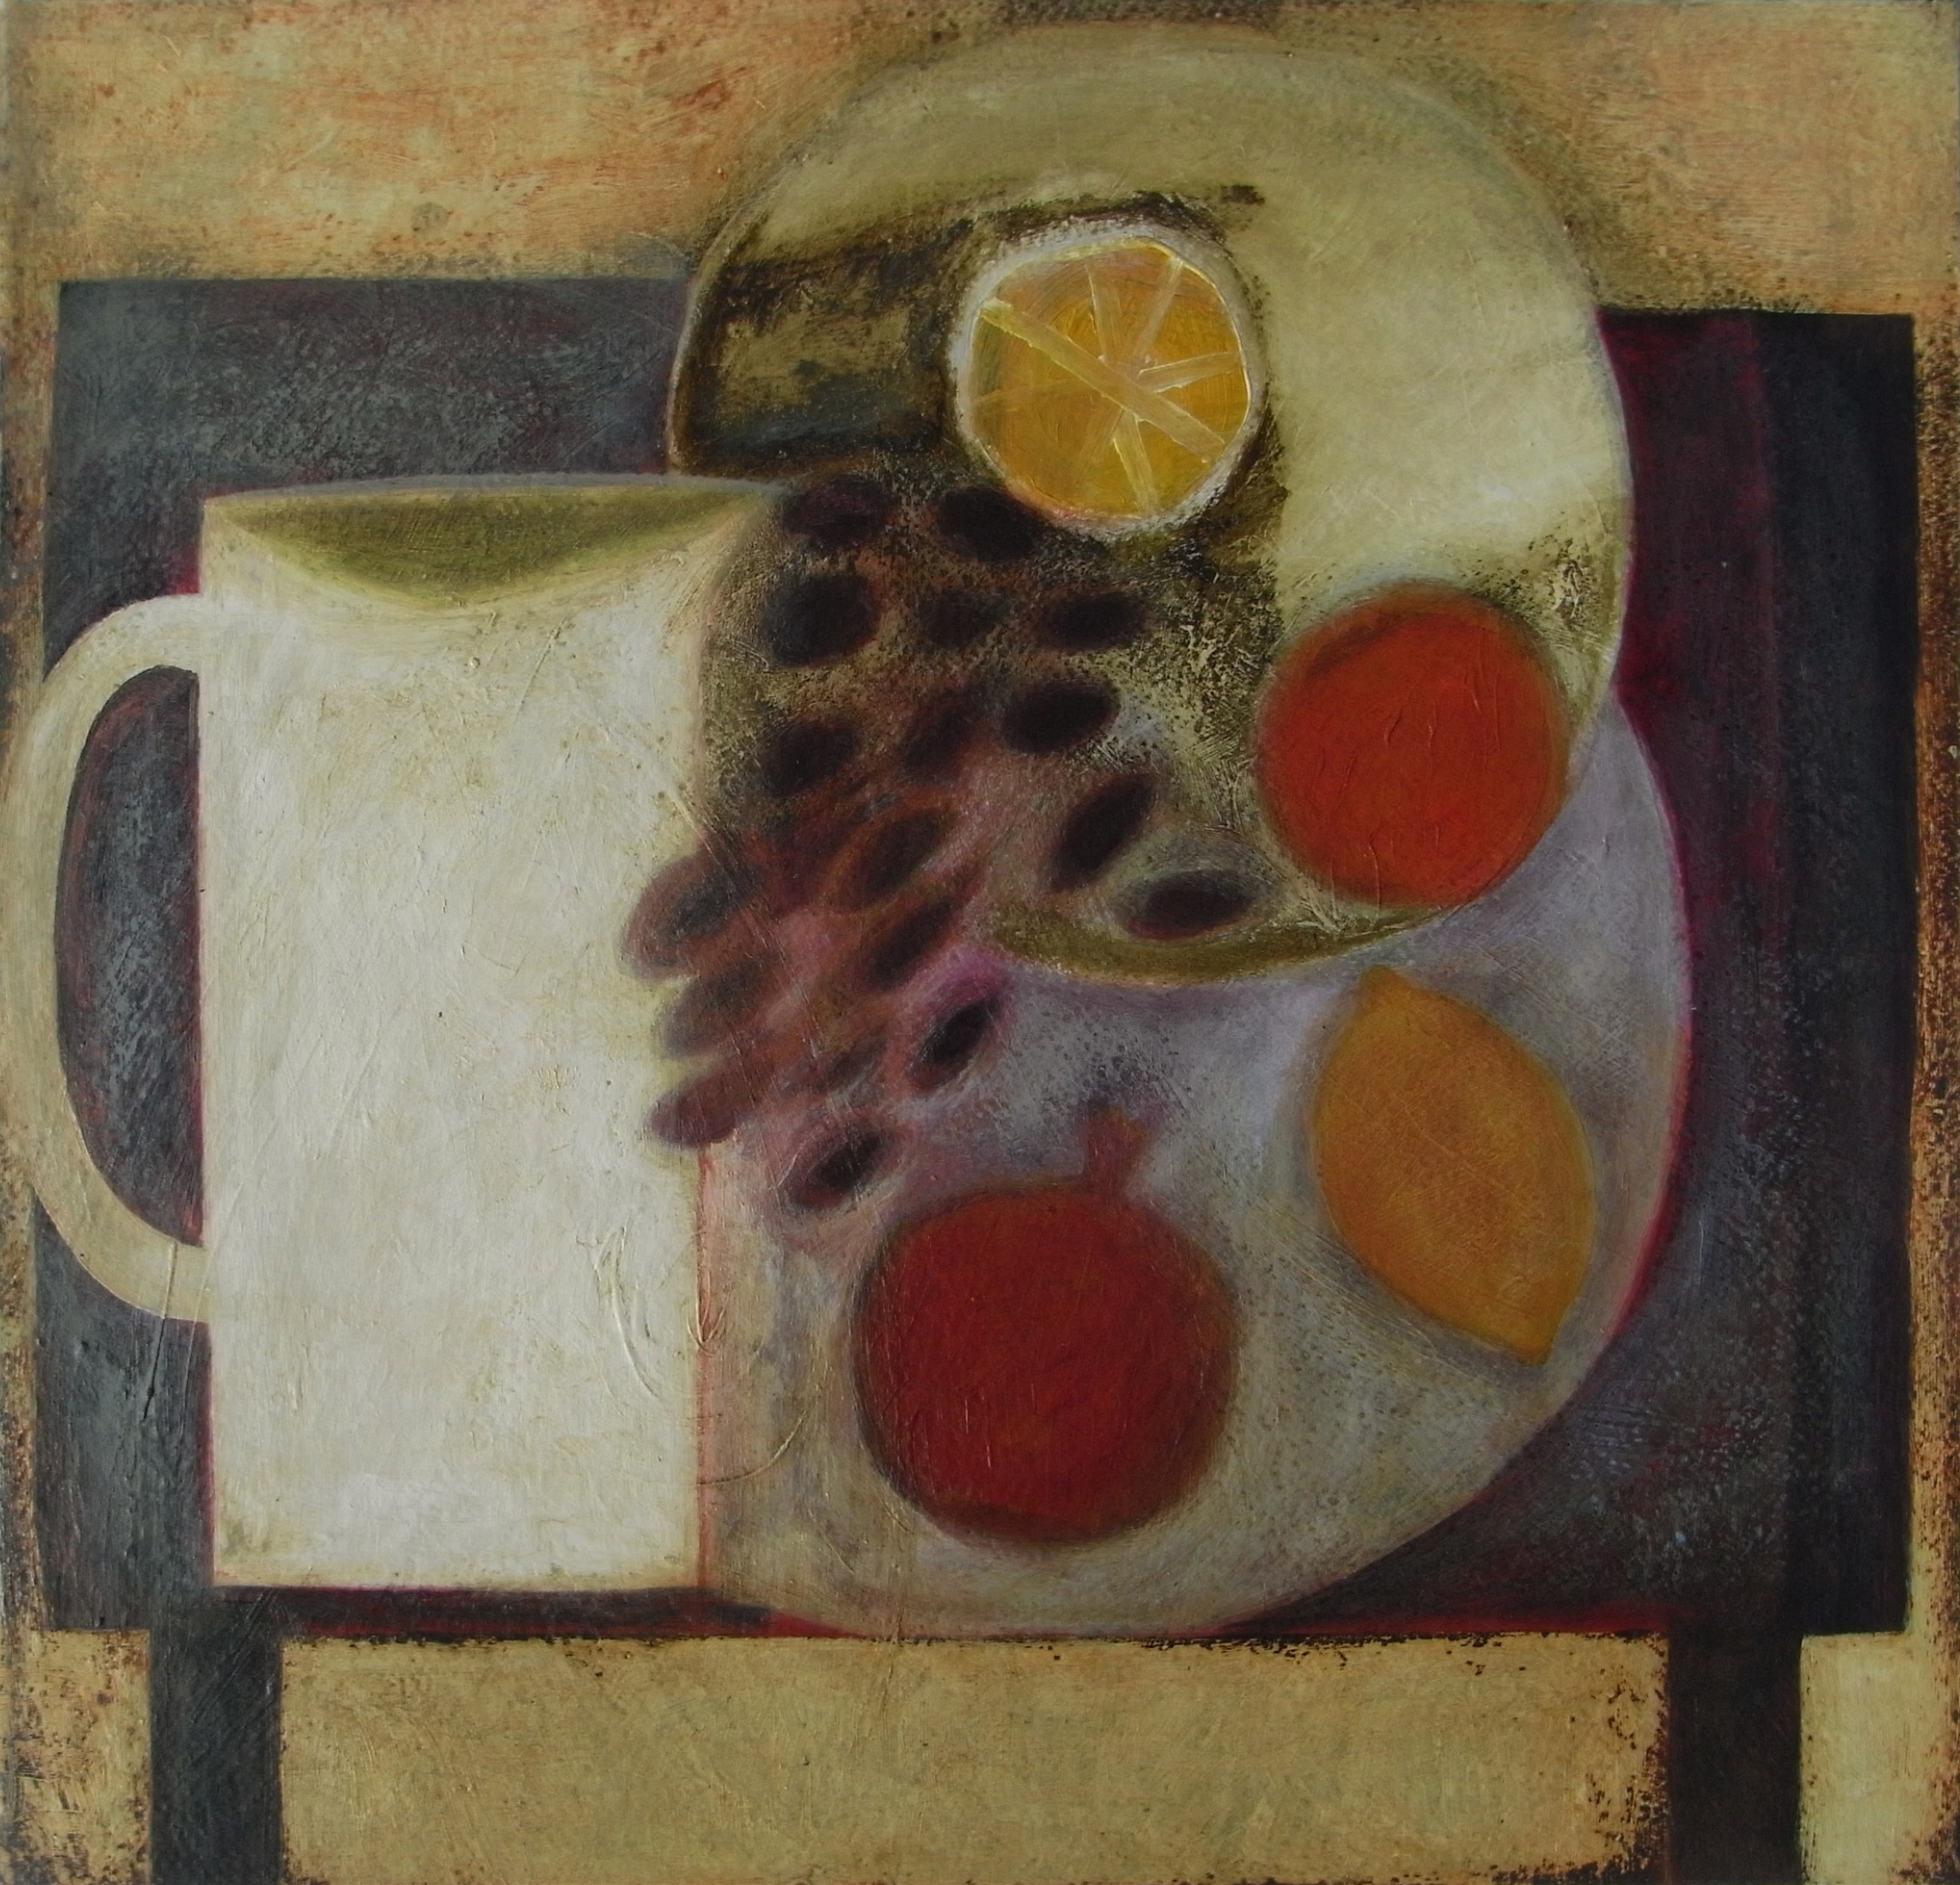 Table with Jug and Fruit Plate, 45cm x 47cm, 2010